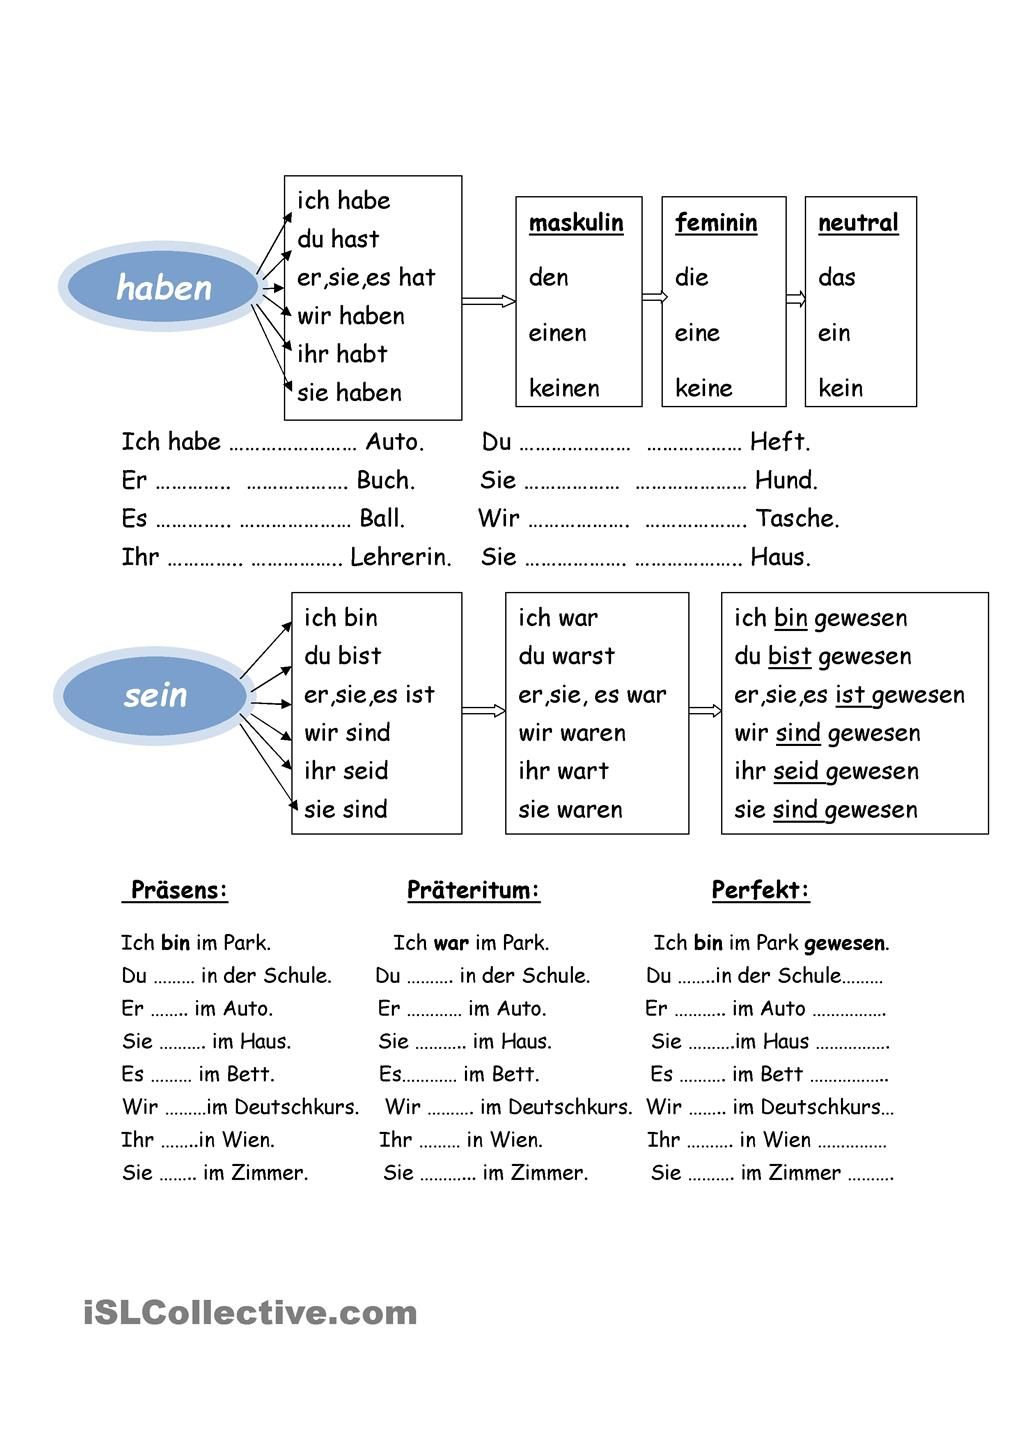 Worksheets German Worksheets haben sein language german and learn sein